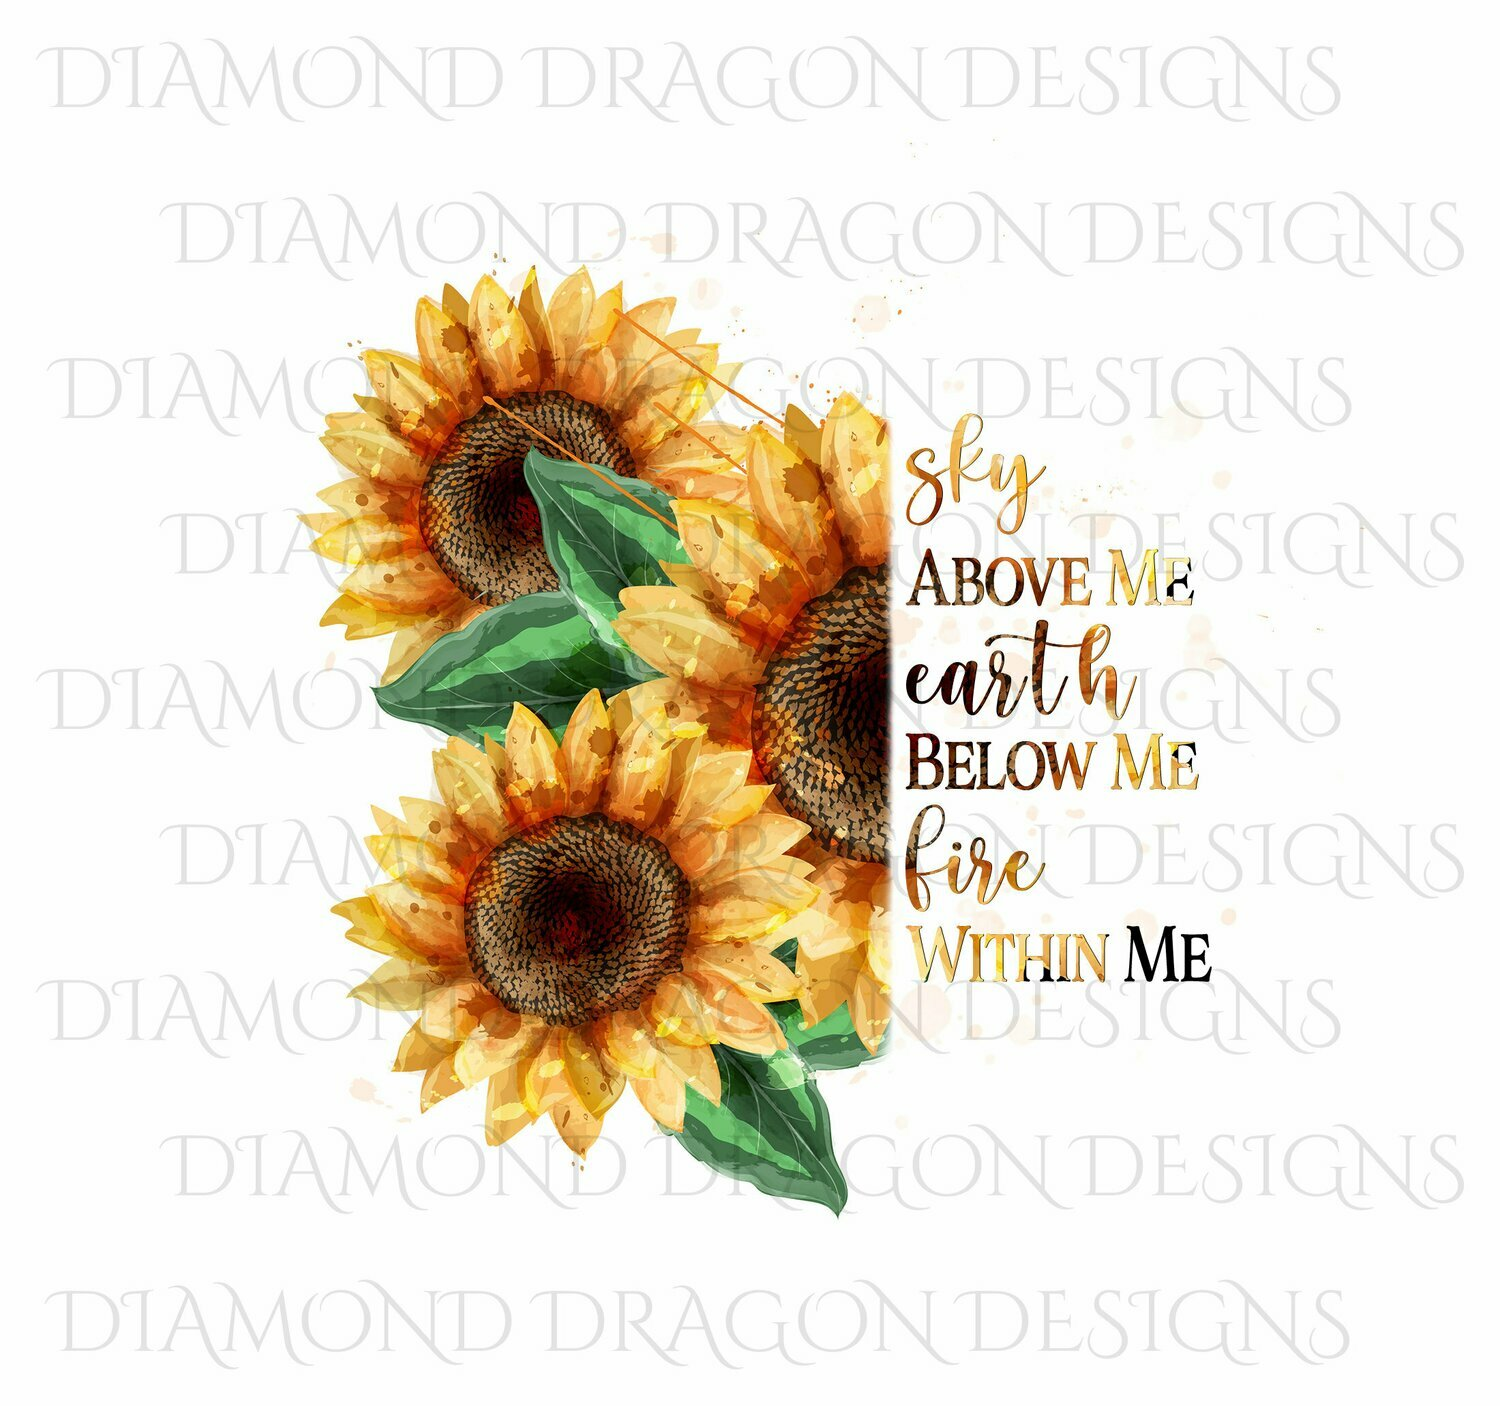 Sunflowers - Whole Sunflower, Half Sunflower, Sky Above Me, Earth Below Me, Quote, Digital Image